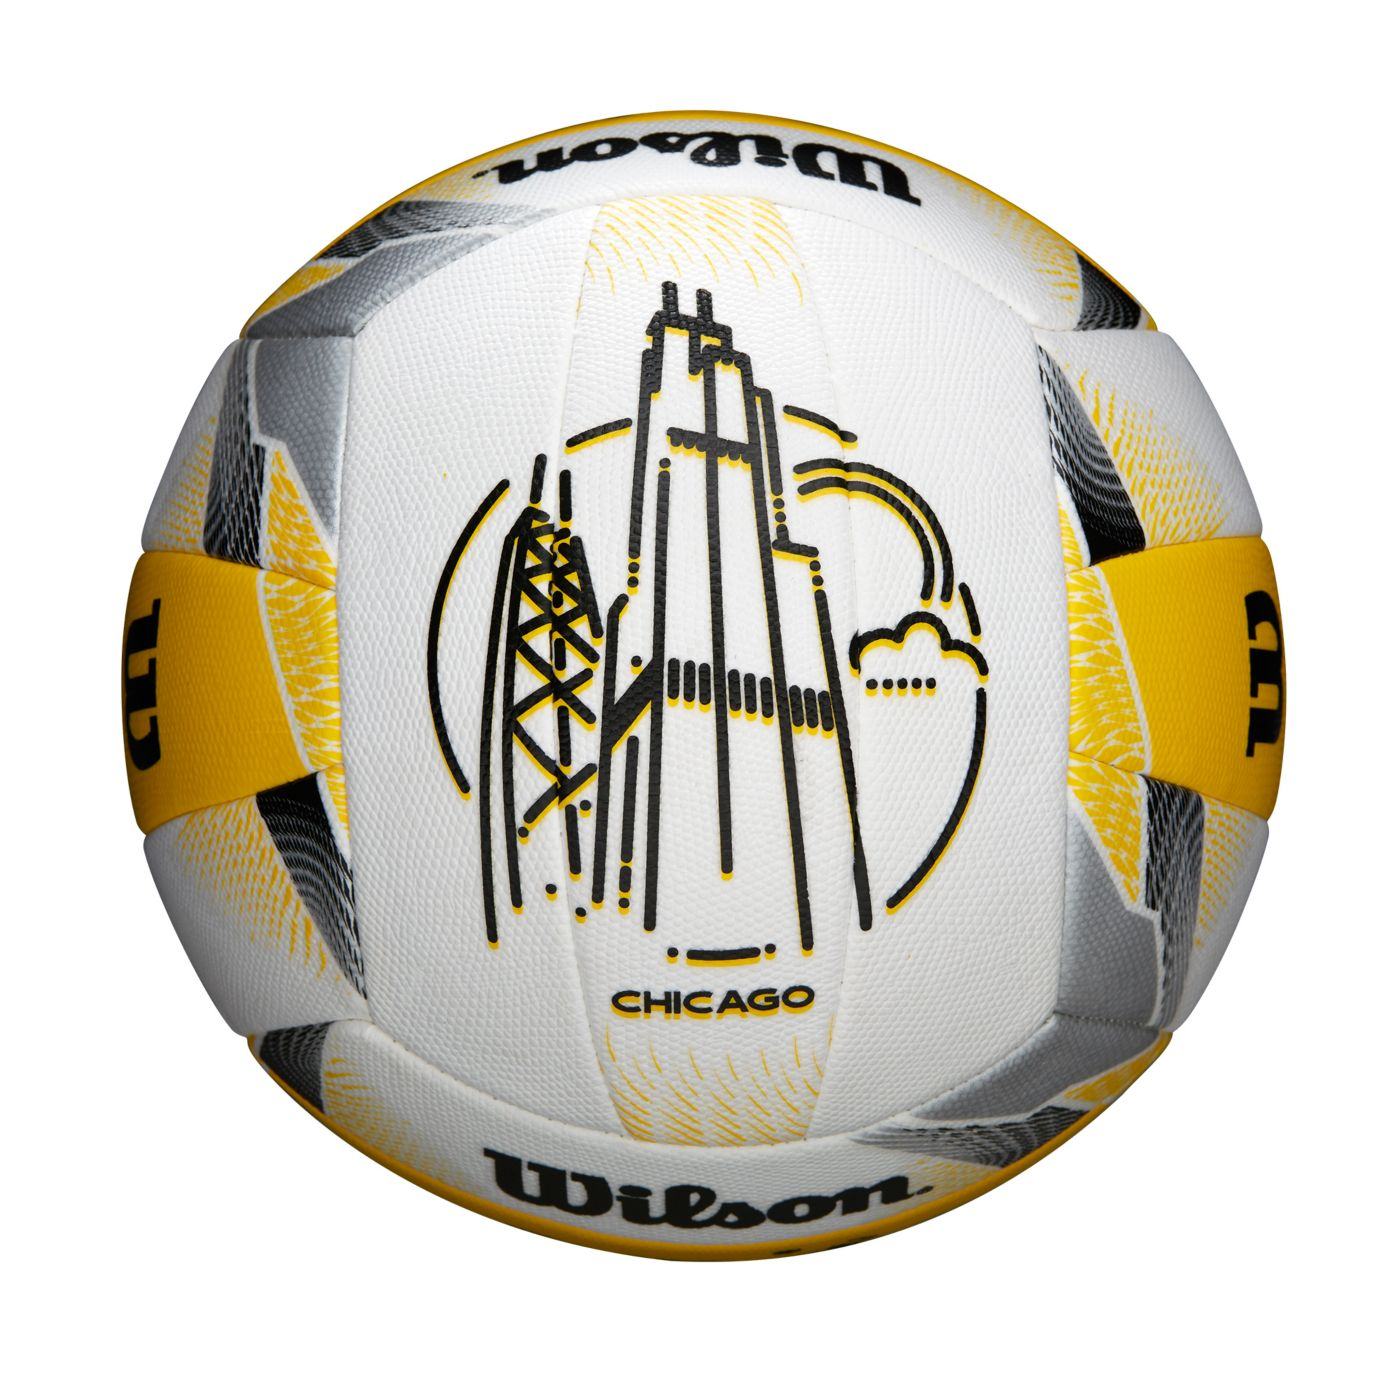 Wilson AVP Replica City Chicago Outdoor Volleyball